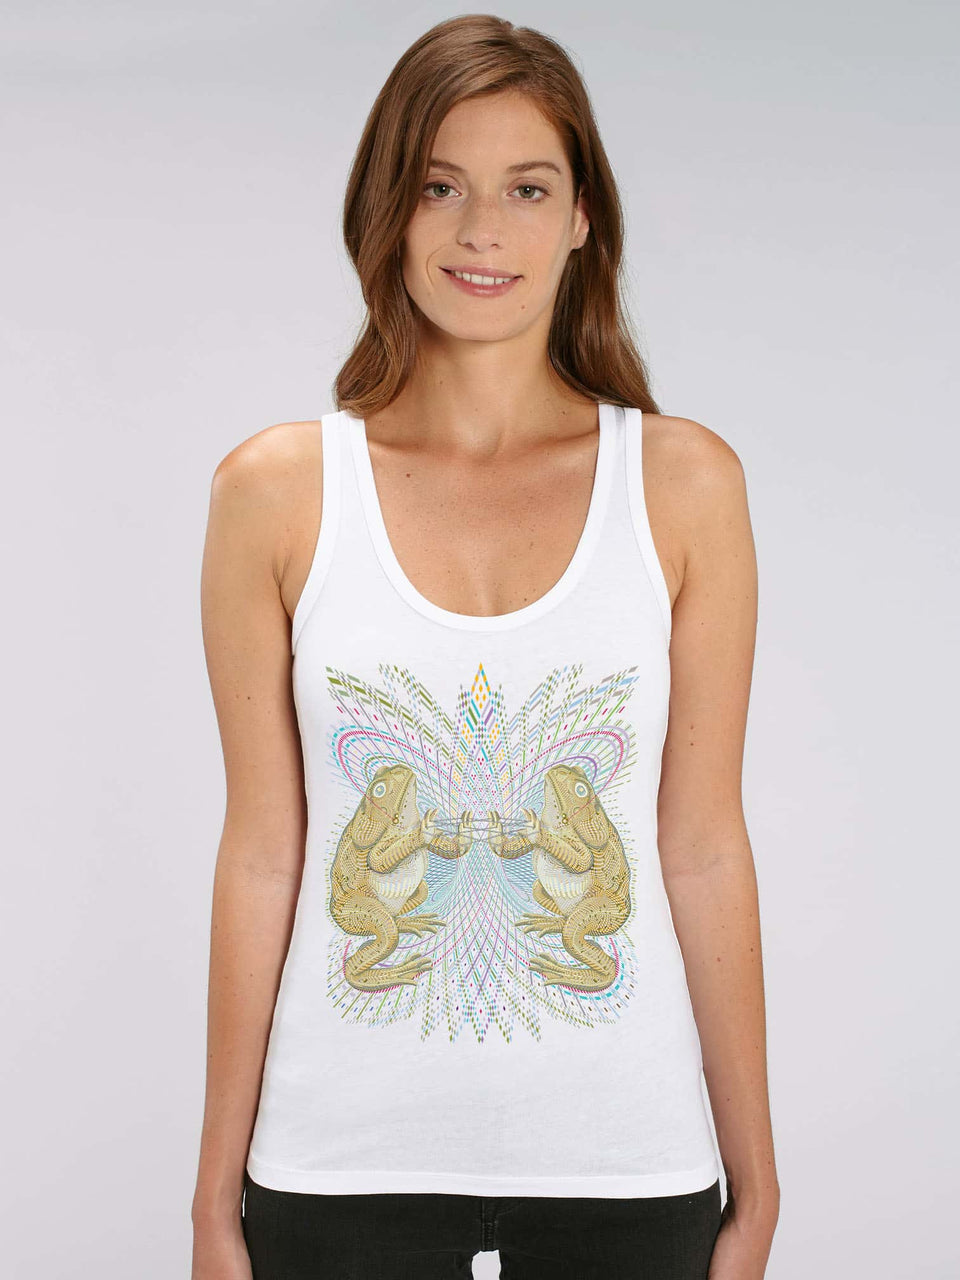 Bufo Alvarius Made To Order Women Tank Top - White